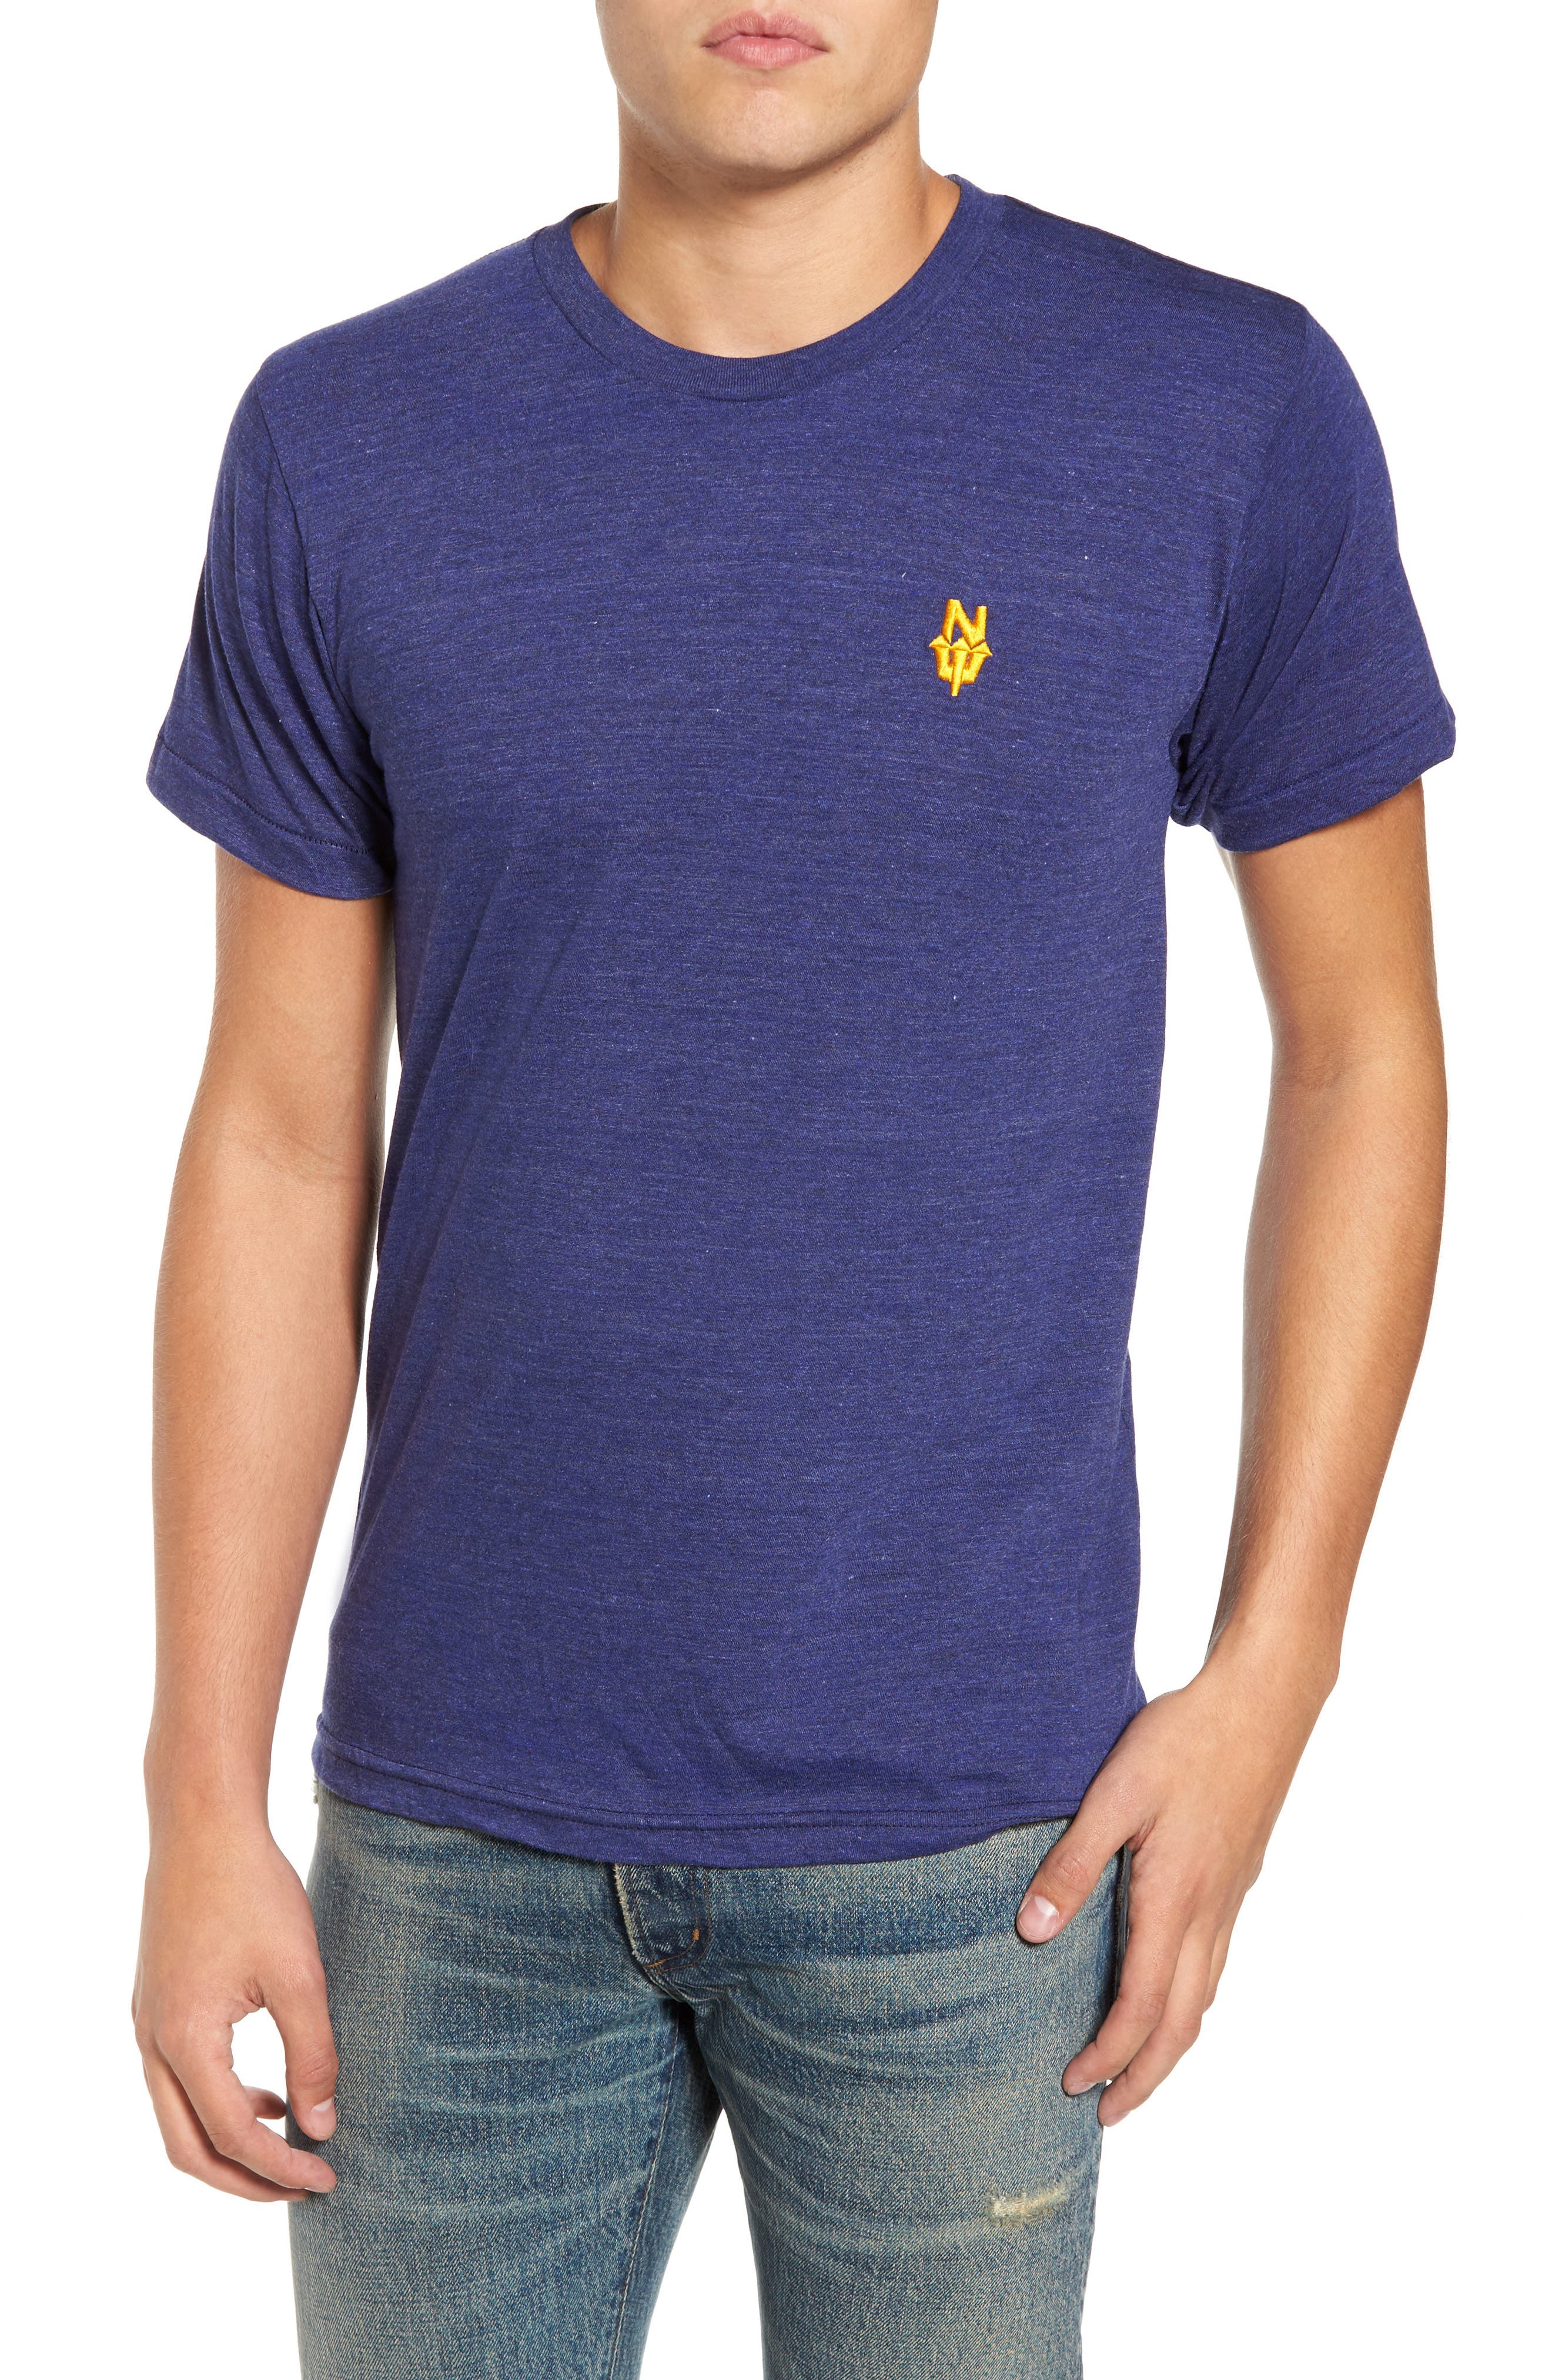 Casual Industrees NW Trident Embroidered T-Shirt